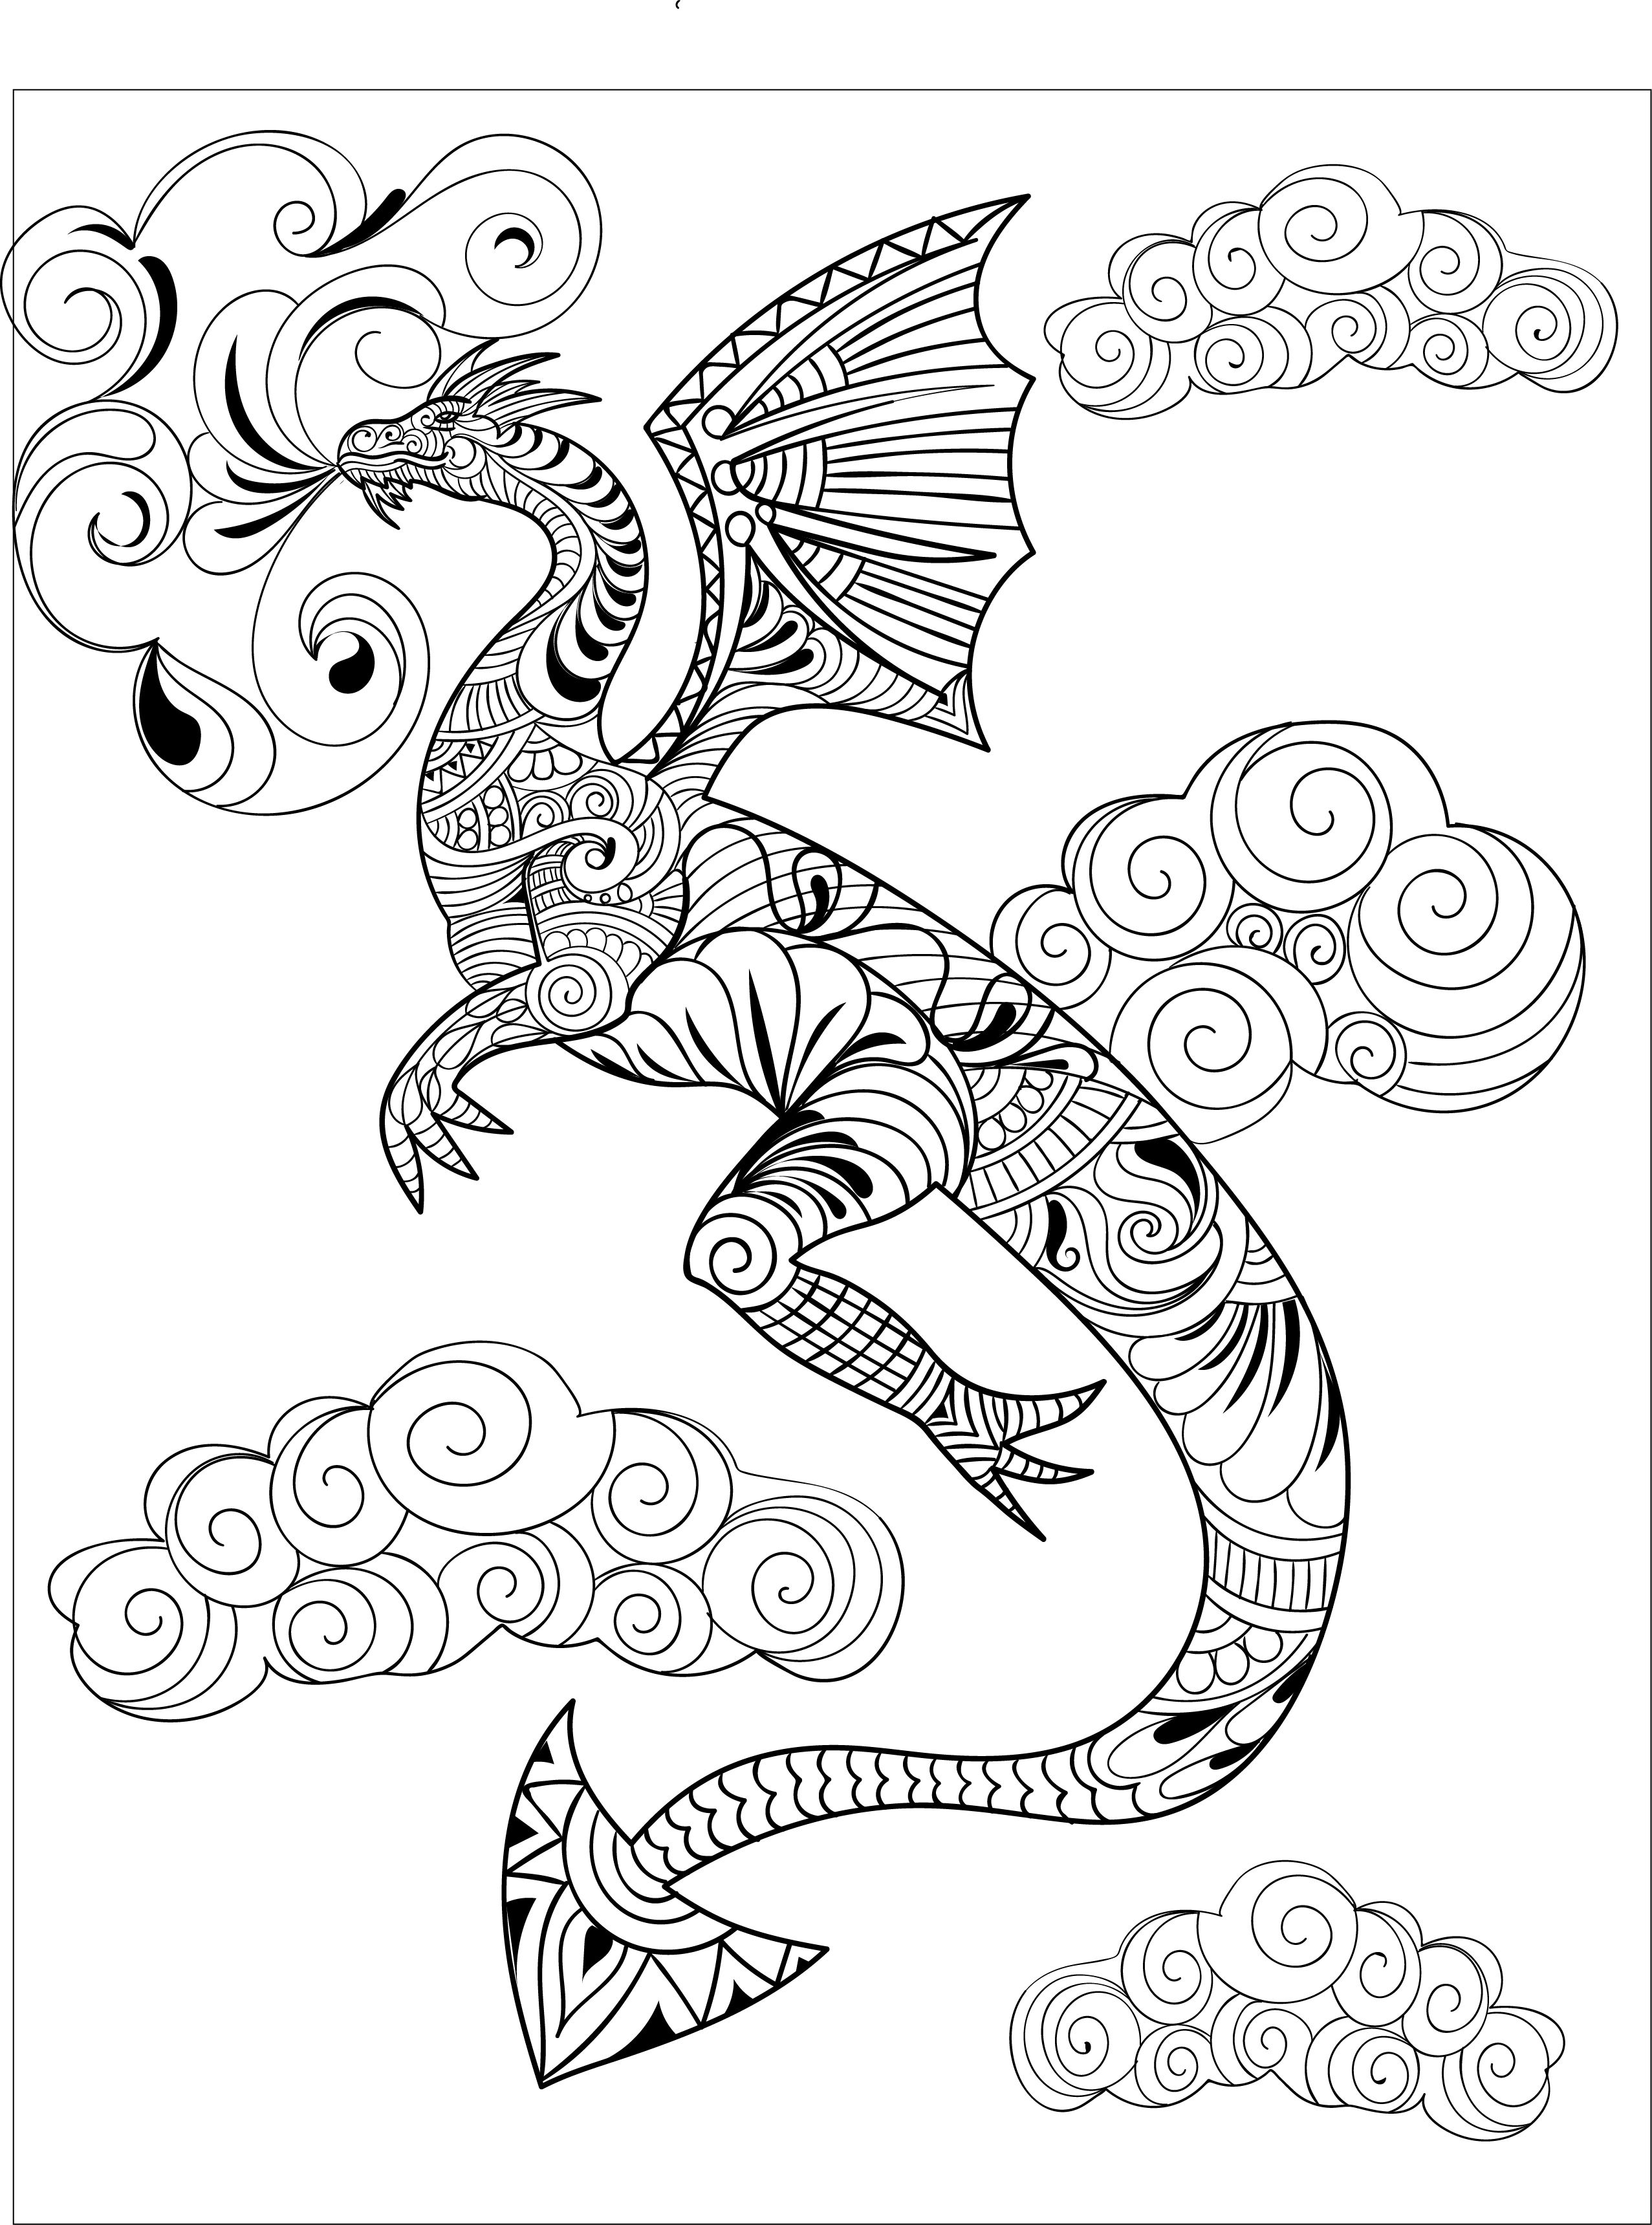 A dragon from one of Creatively Calm Studios' Adult ...